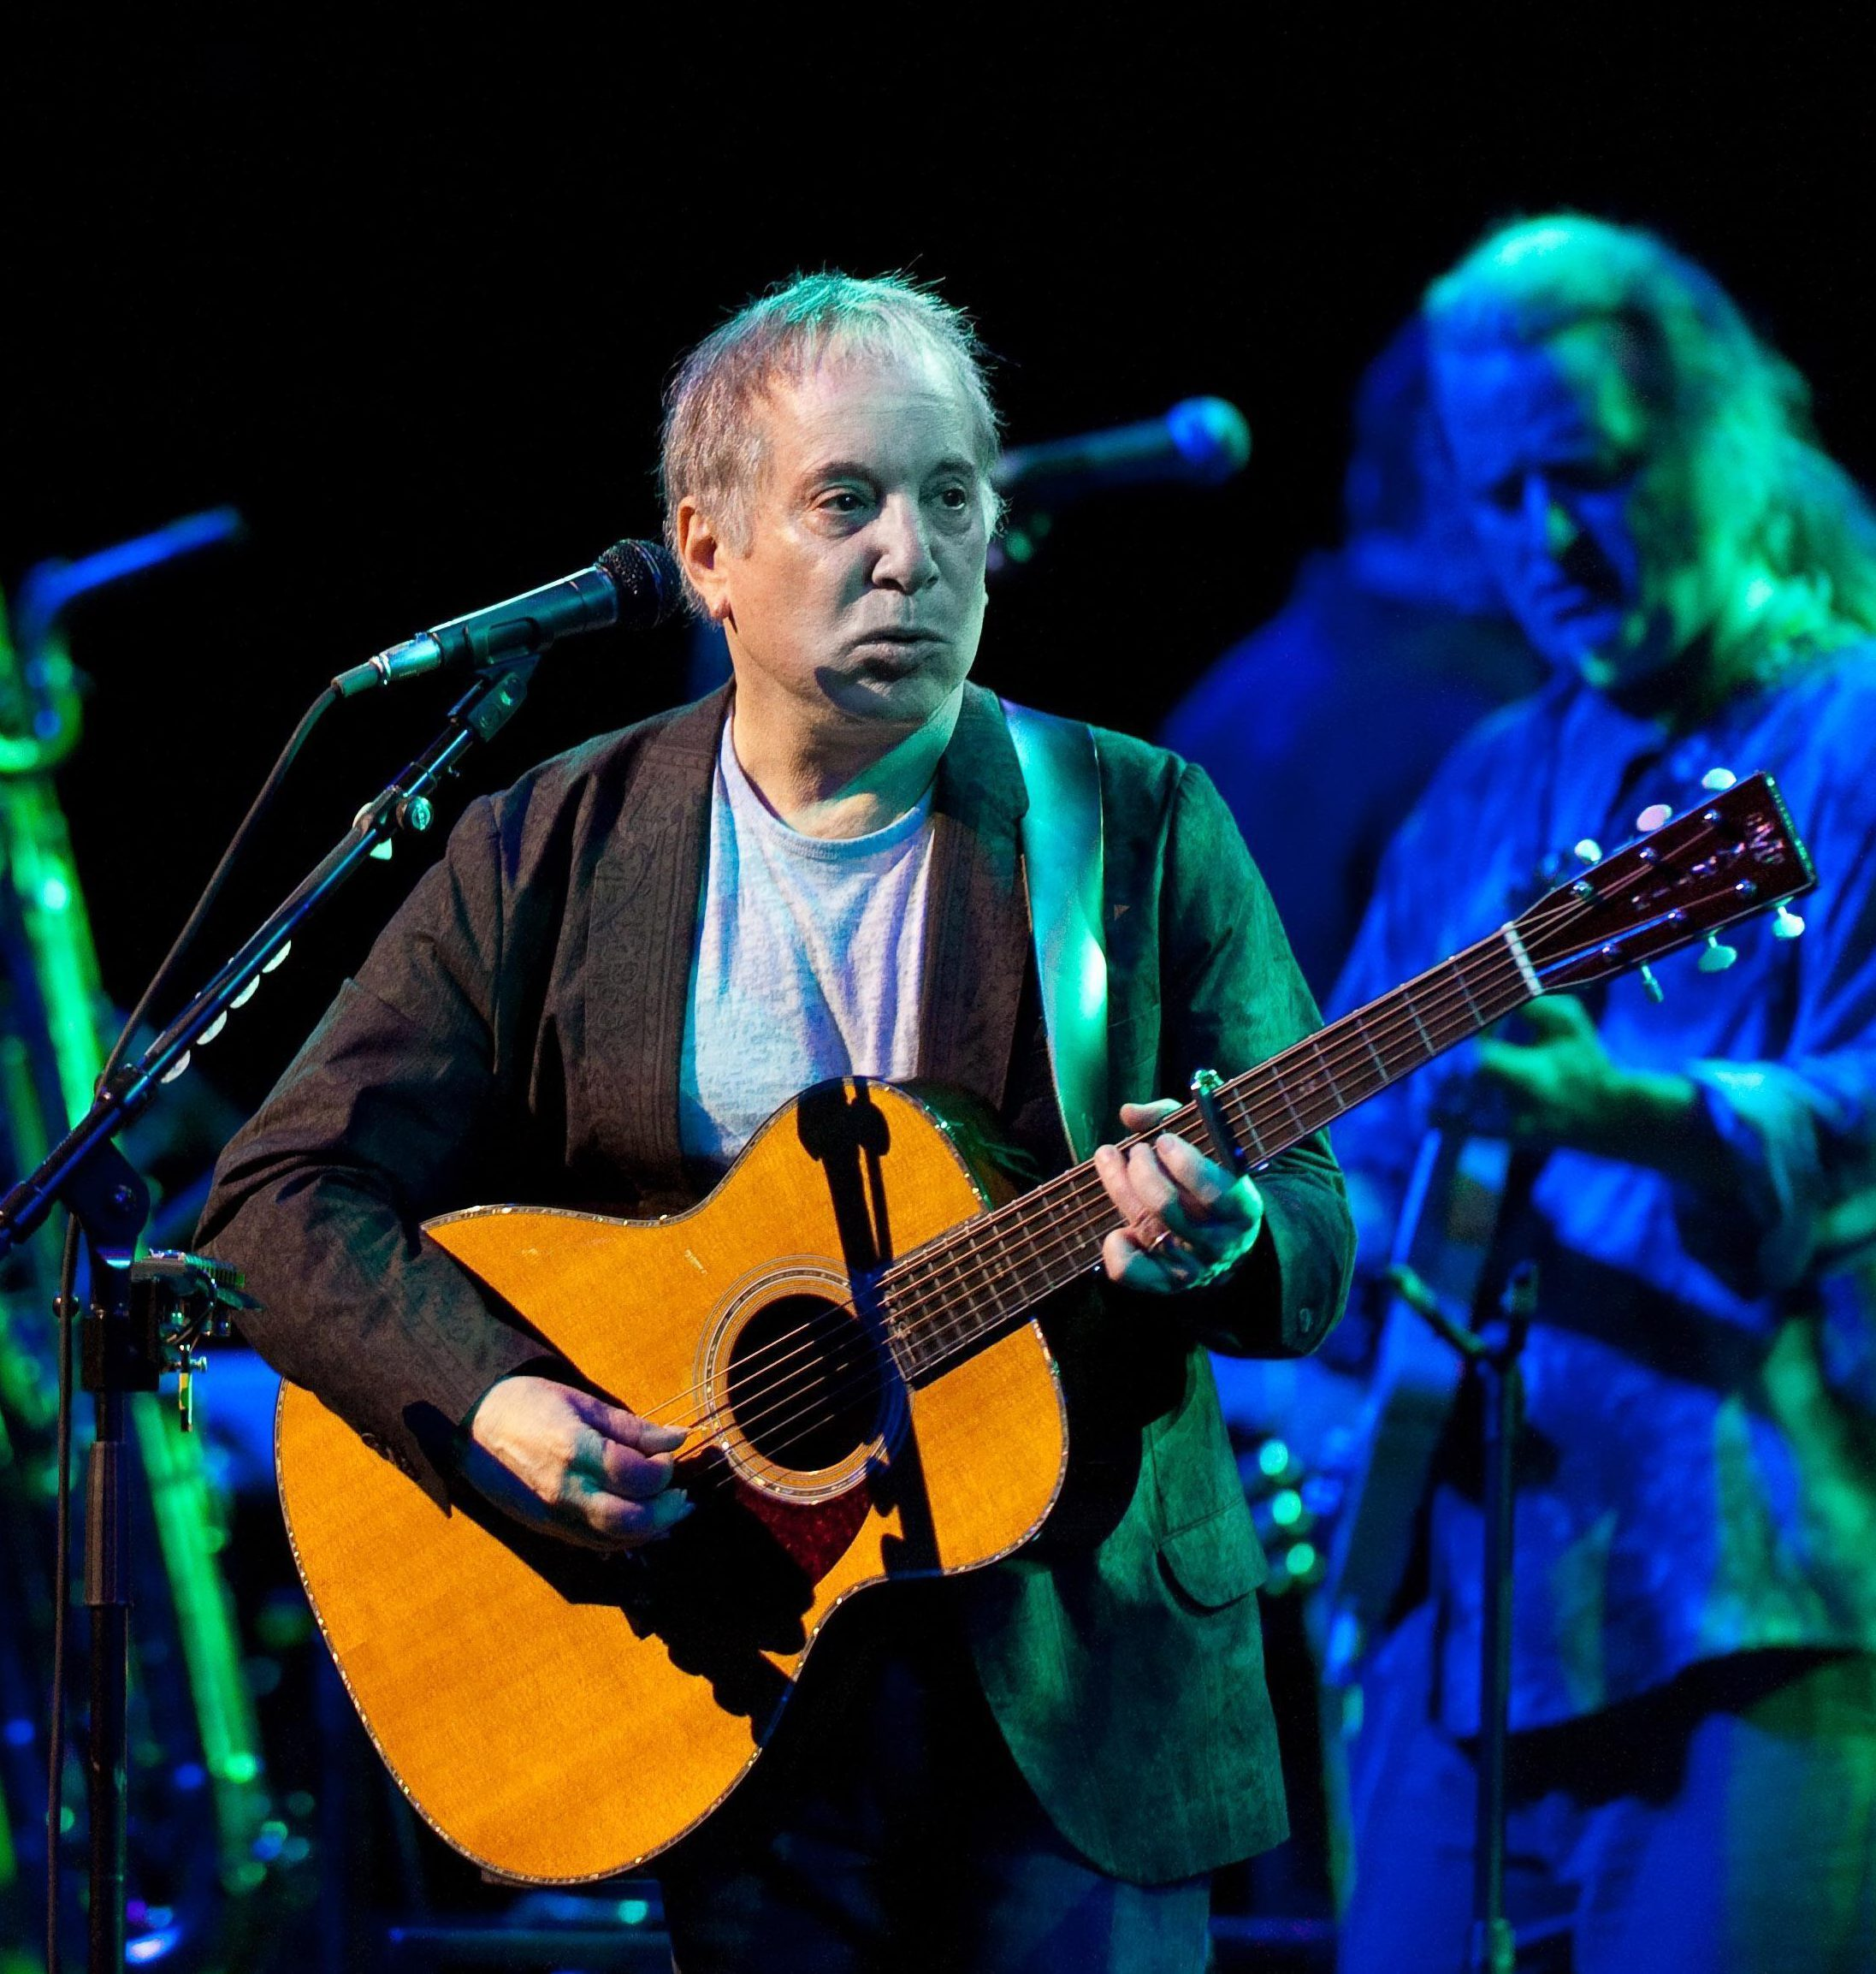 Paul Simon will play his last ever stage show in Britain this summer